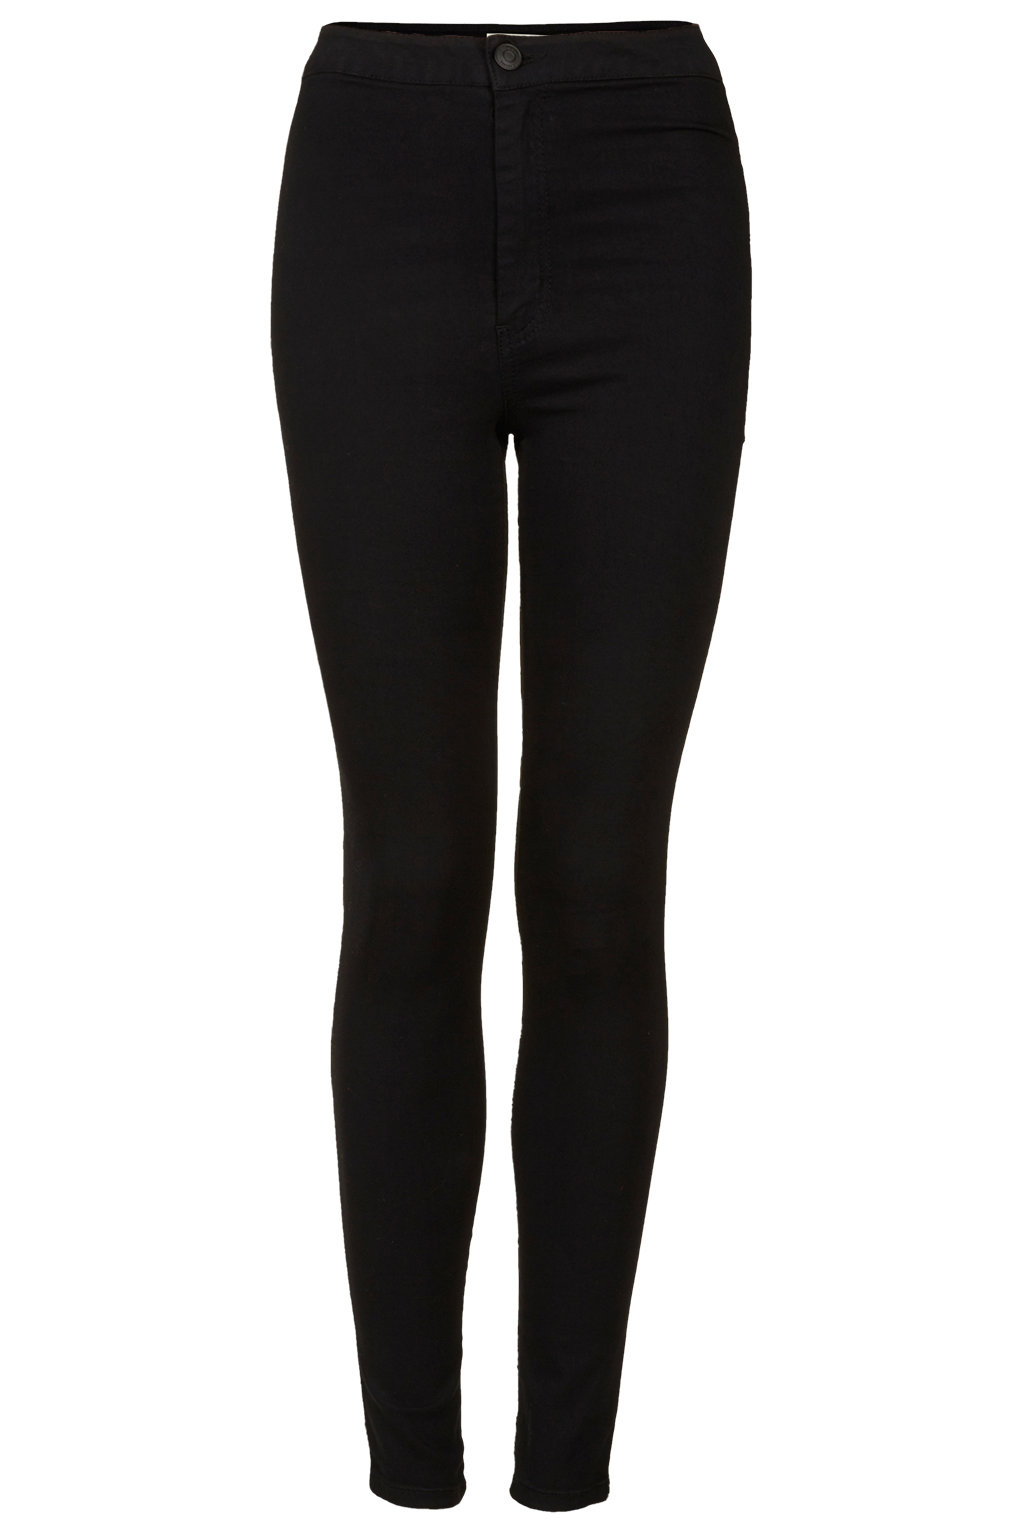 Black Joni Jeans - Joni Super High Waisted Jeans - Jeans - Clothing